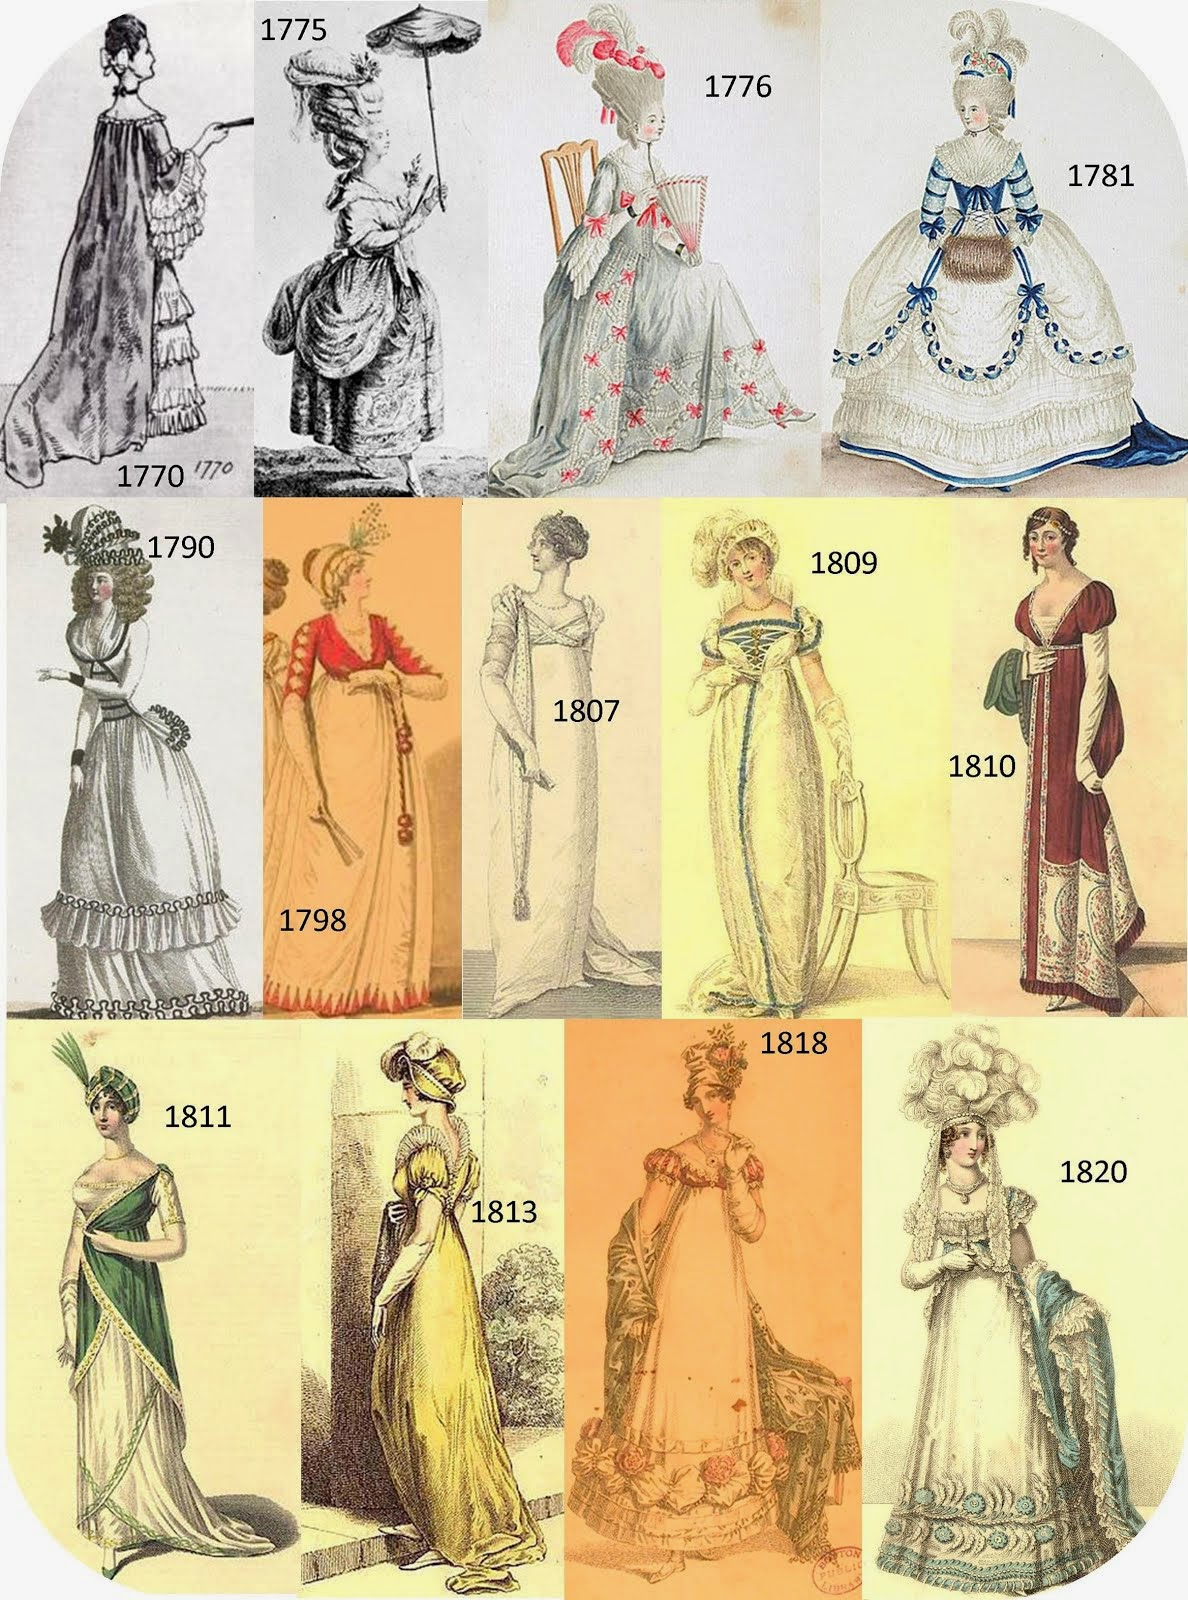 costume adoratia 18th century fashion dress before and after the womens fashions 1770 1820